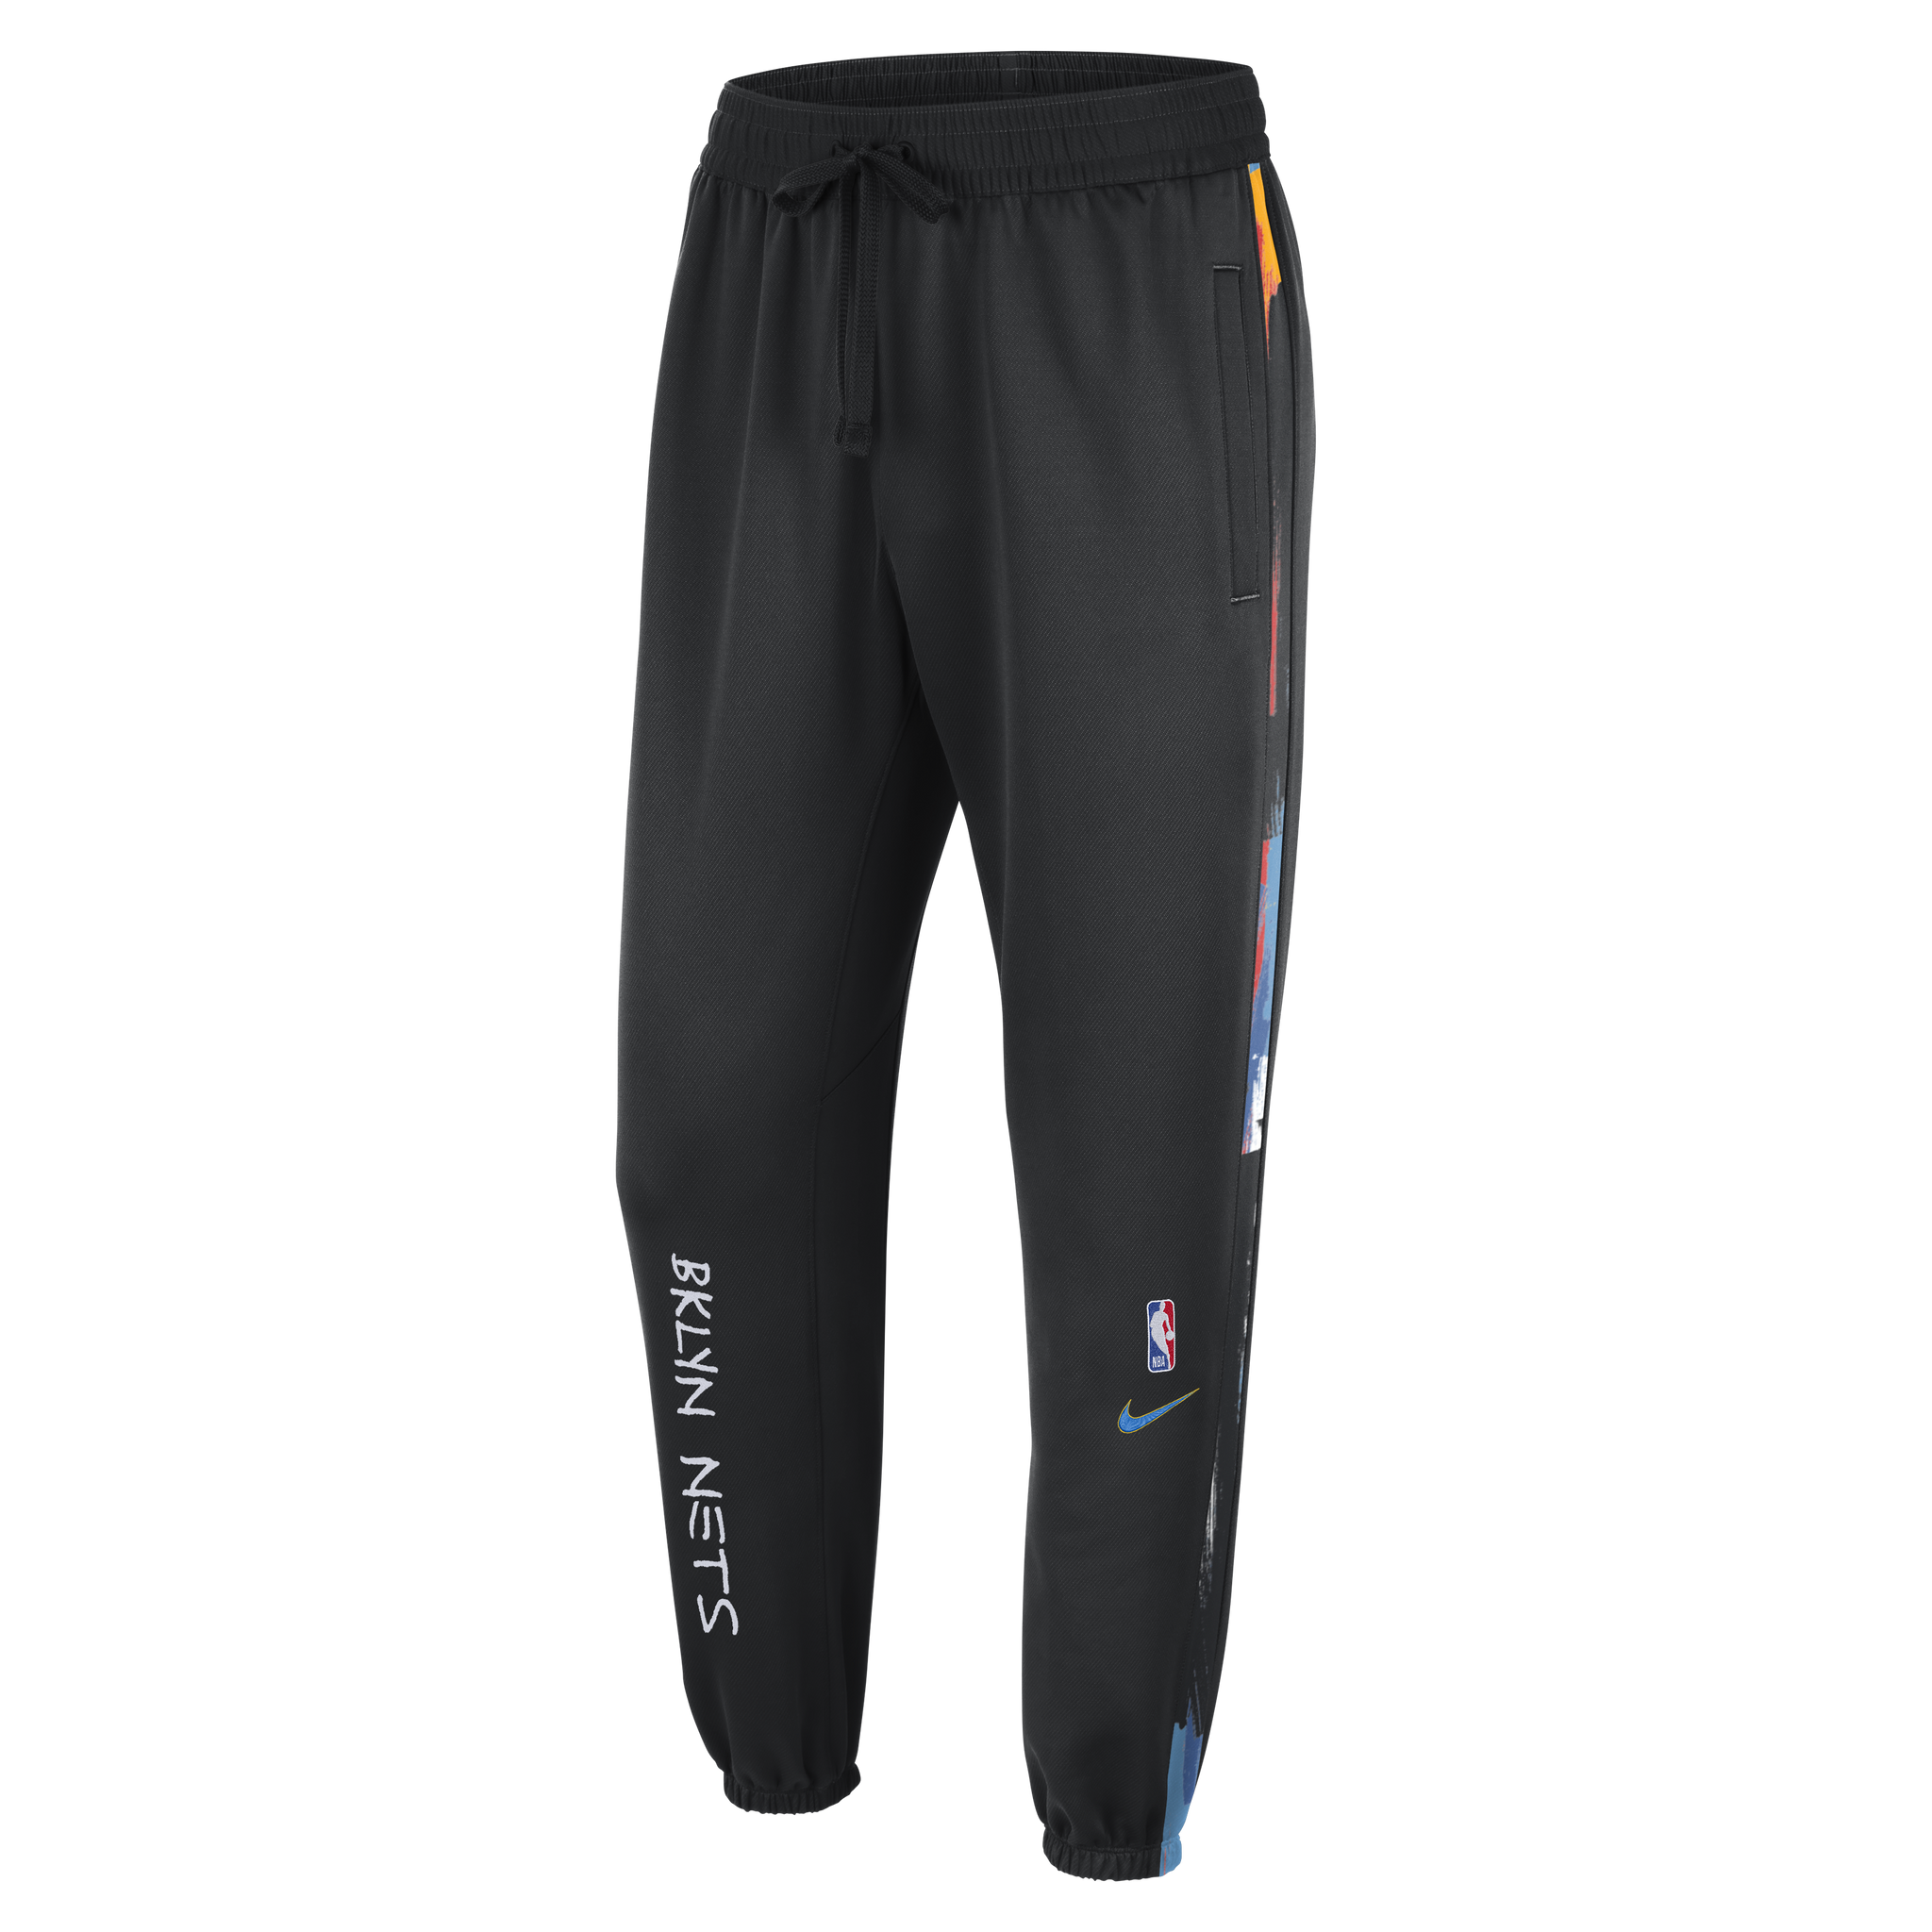 Men's 20-21 City Edition Therma Flex Showtime Pants - NetsStore.com